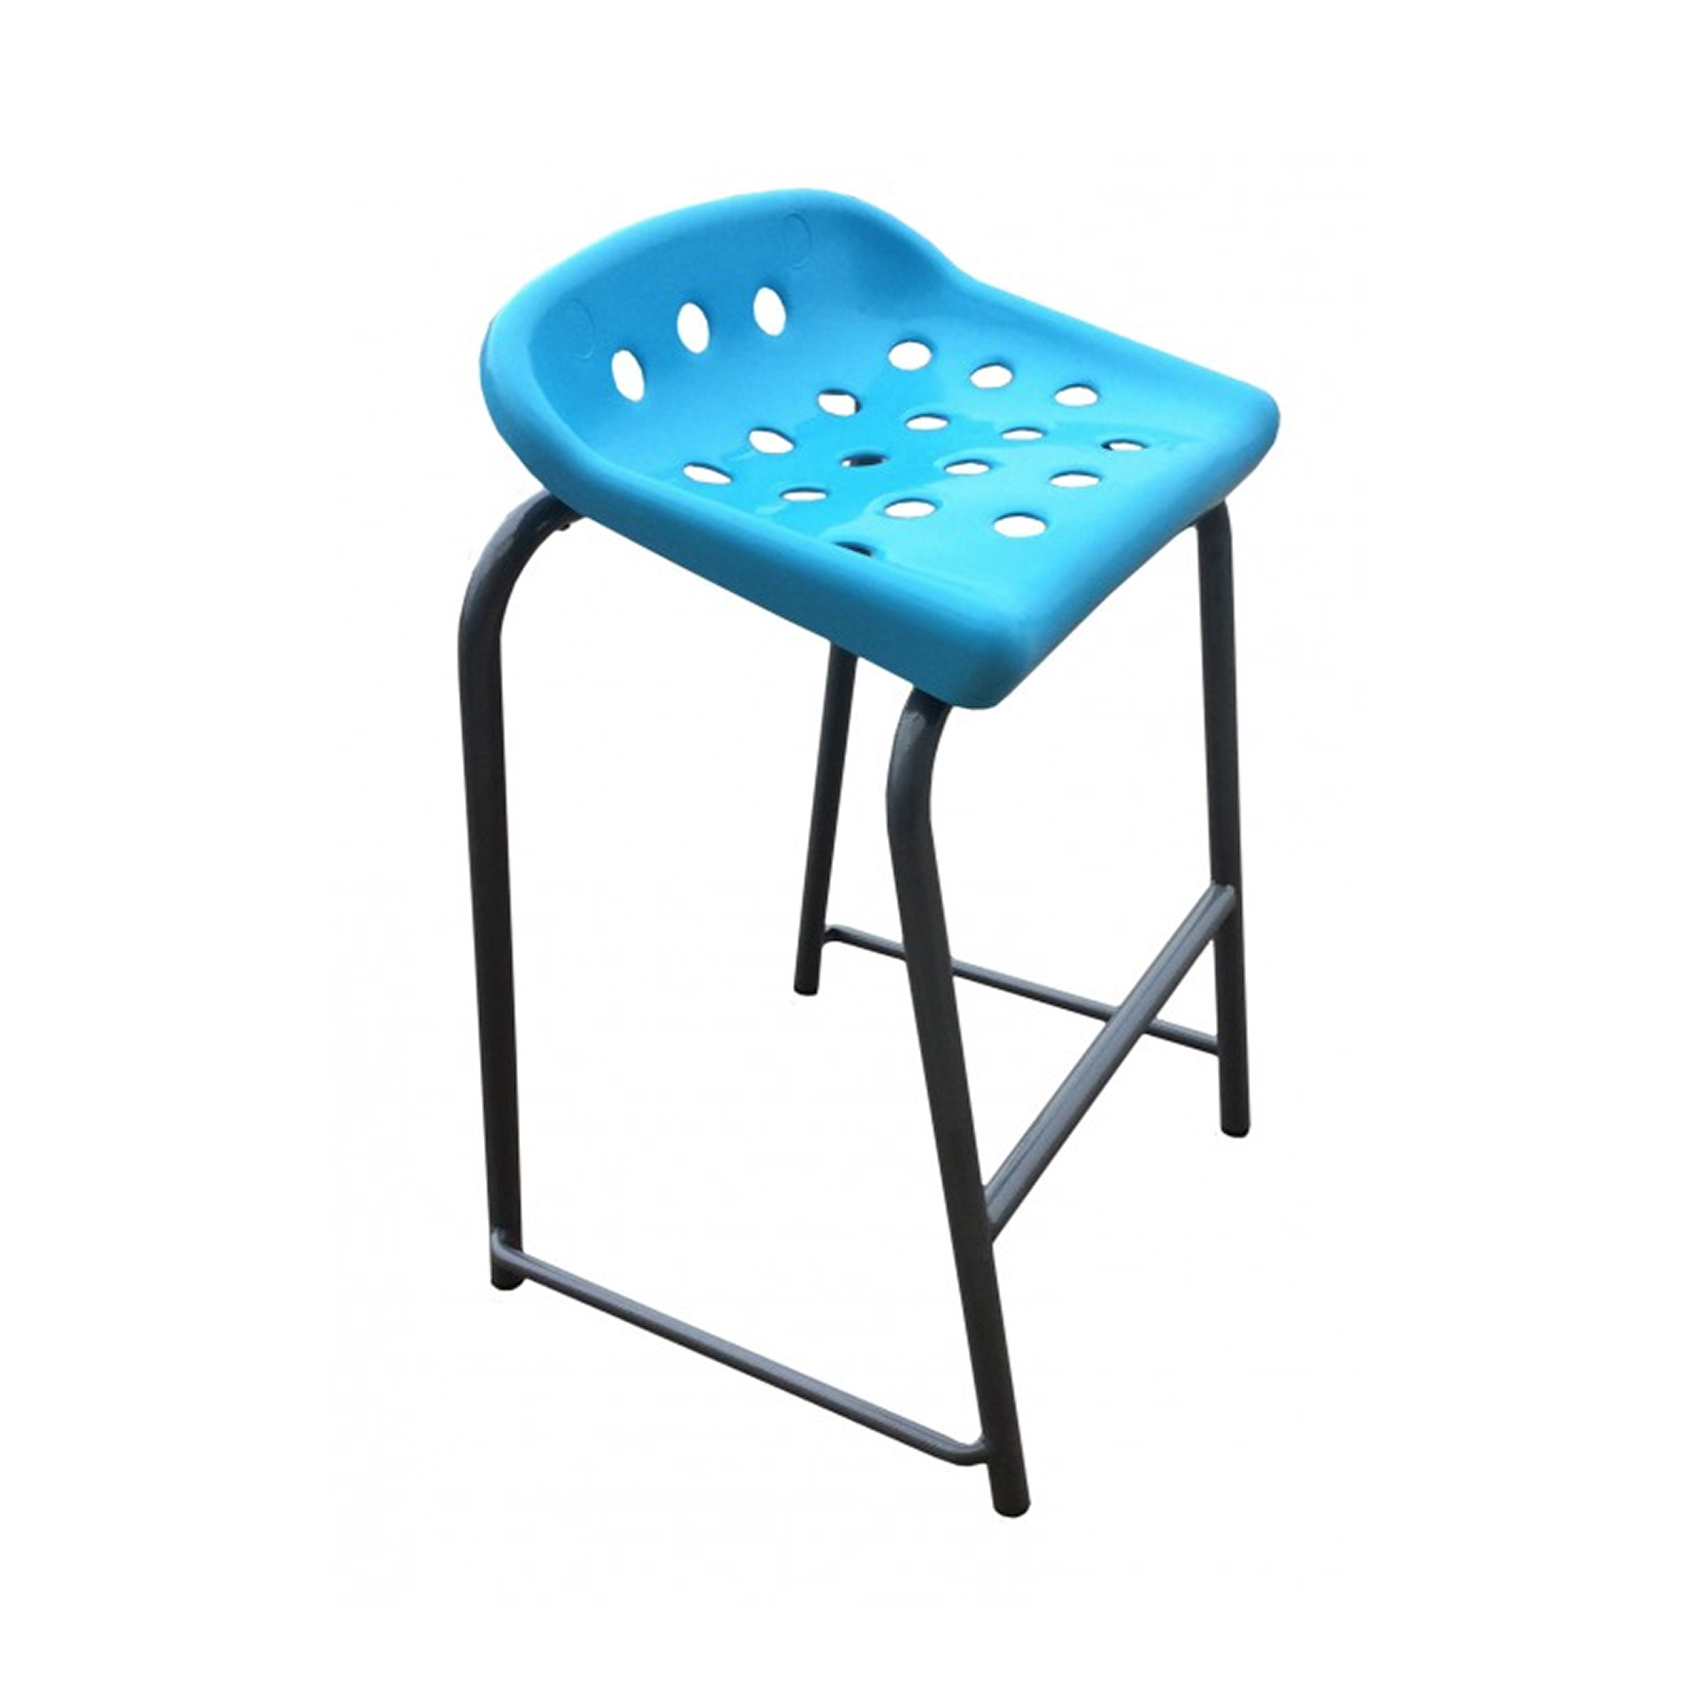 Pepper Stool